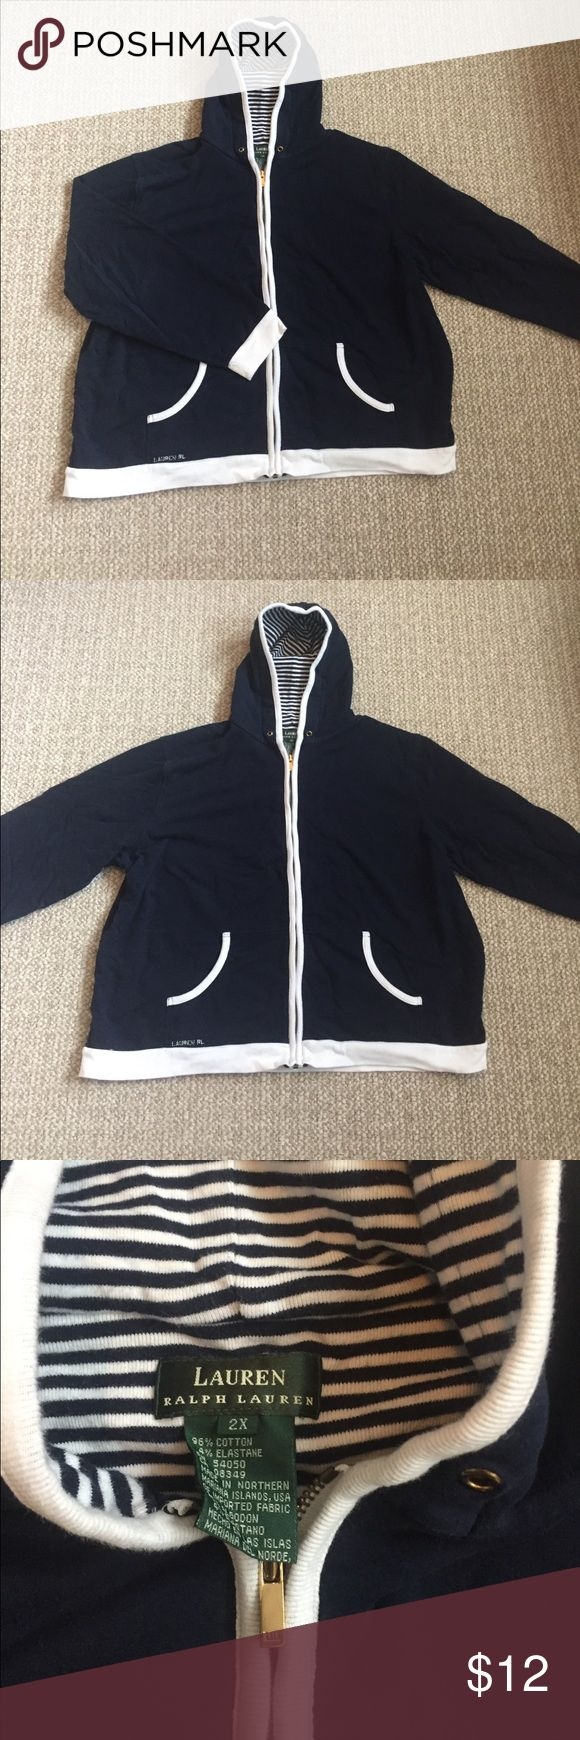 Ralph Lauren nautical sweatshirt Ralph Lauren nautical zip up hoodie; navy blue with white accents and a gold zipper; its missing the string for the hood (I took it out because the hood isn't huge) but otherwise in perfect condition; women's 2XL; 96% cotton, 4% elastane Ralph Lauren Tops Sweatshirts & Hoodies